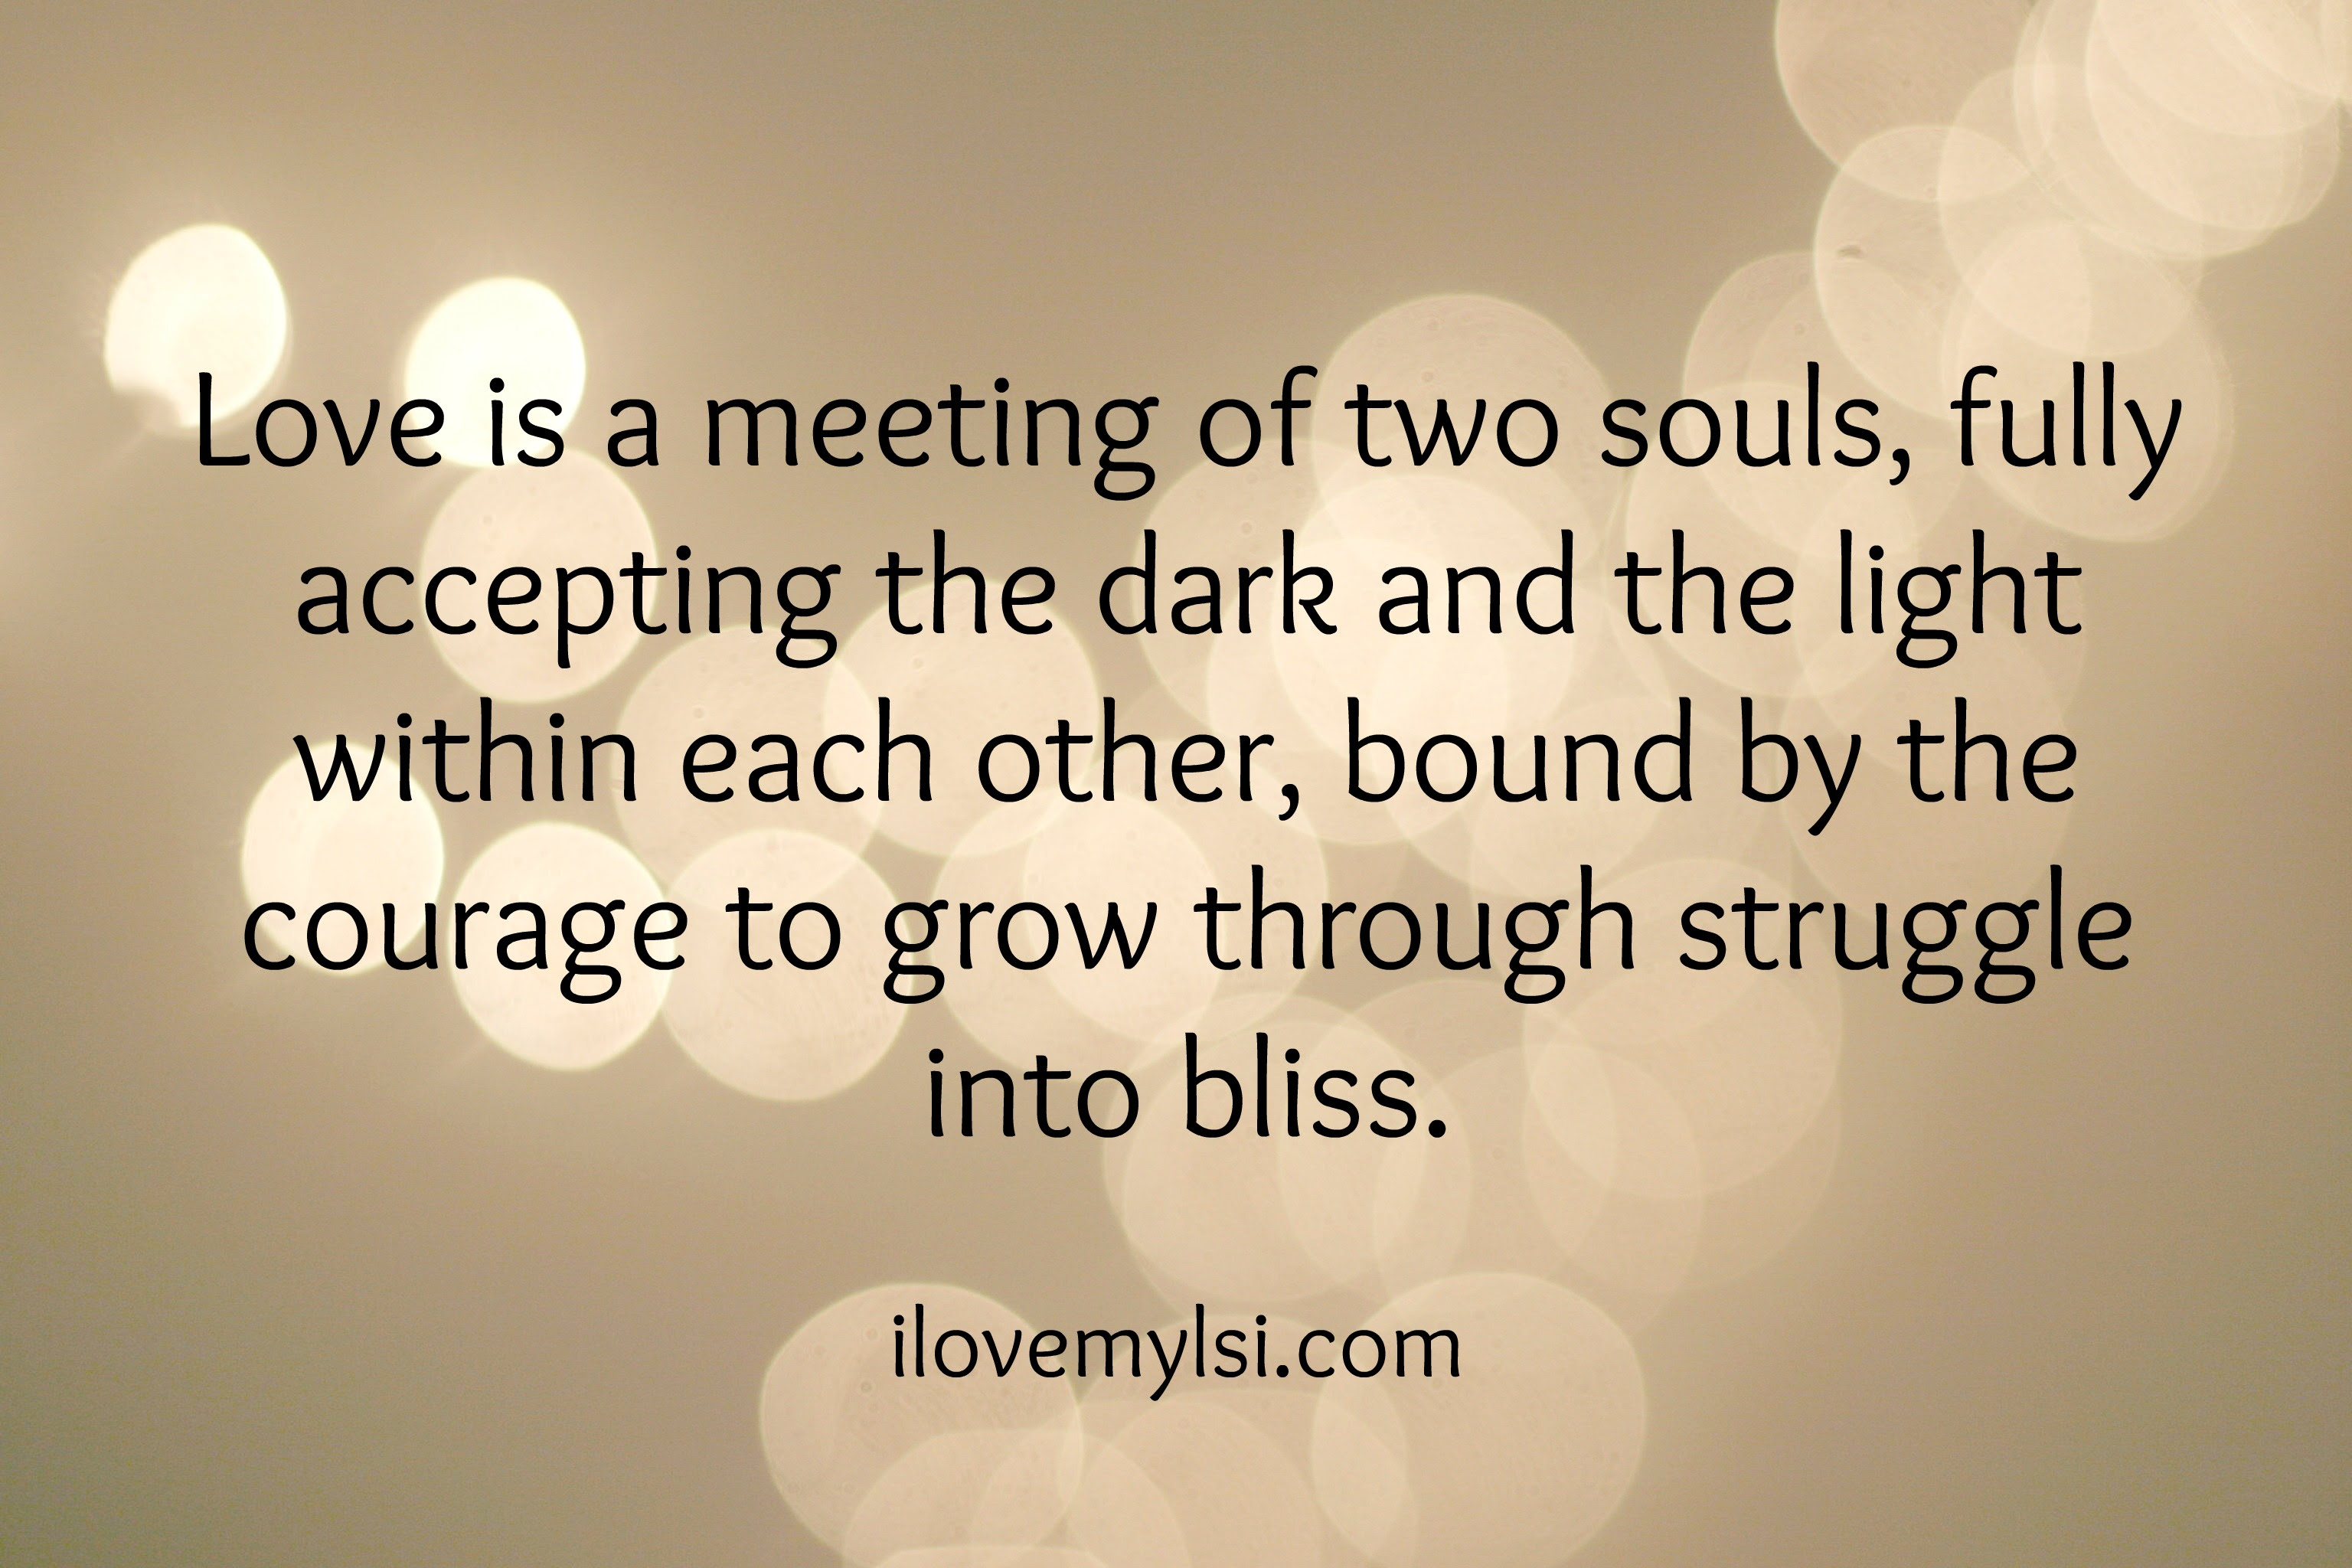 Love is a meeting of two souls